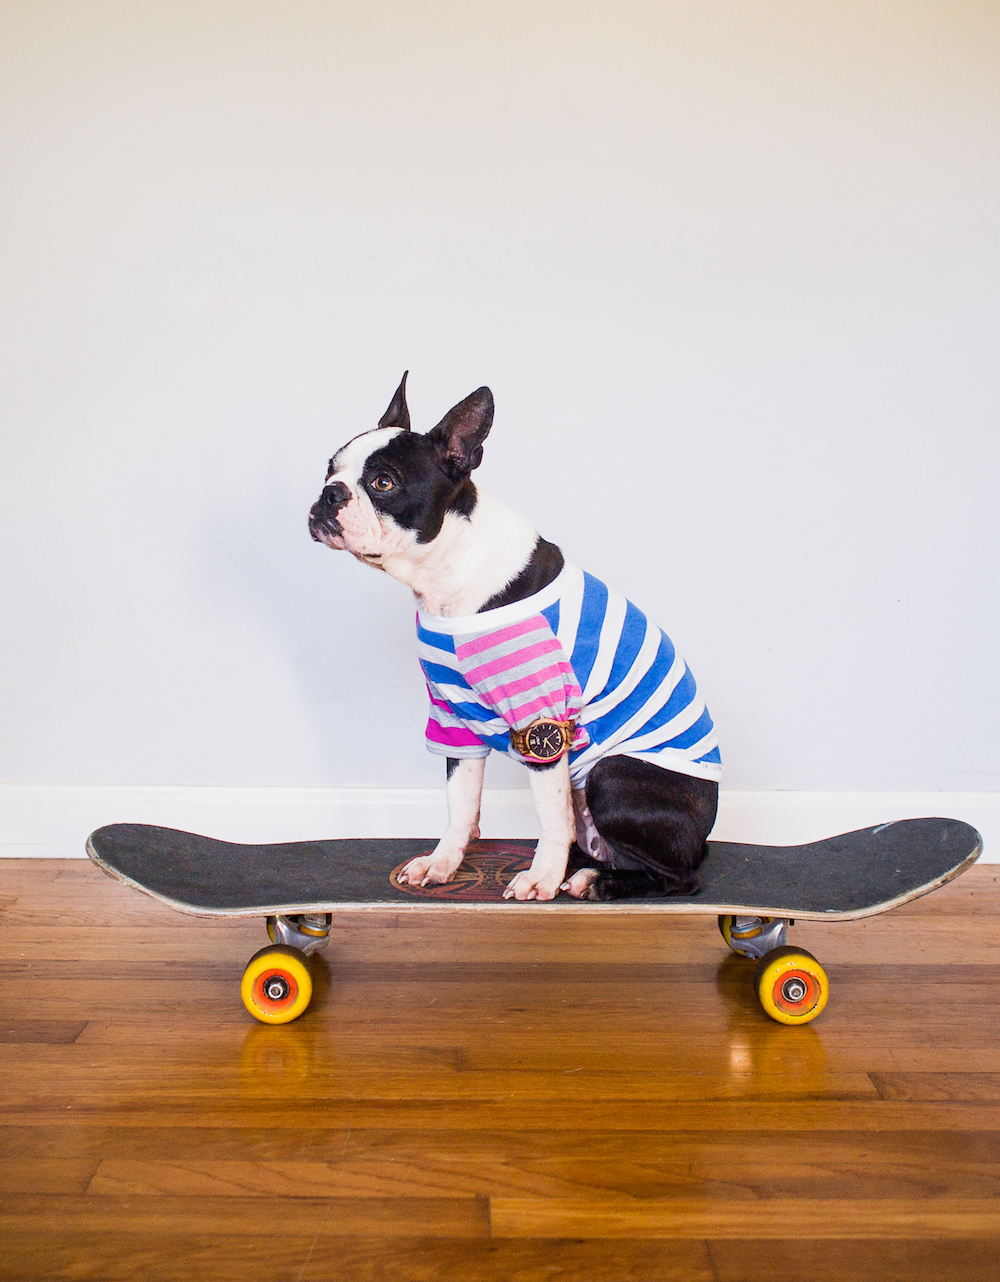 Boston Terrier Puppy on a Skateboard Wearing a JORD Watch